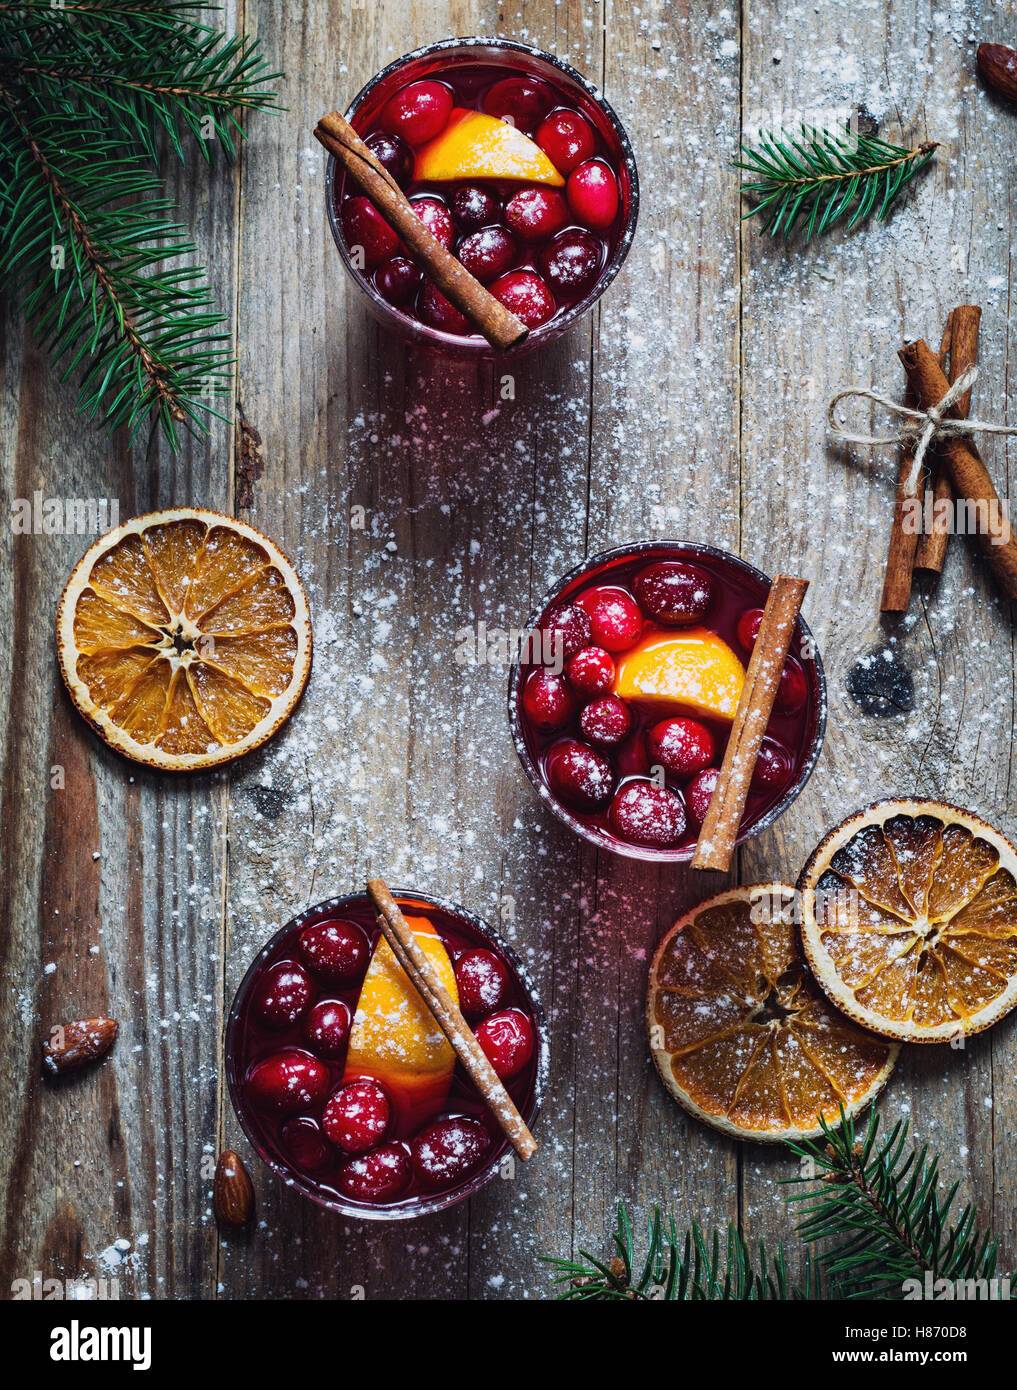 Hot spicy mulled wine with cranberries, cinnamon and orange in glasses on wooden table. Top view - Stock Image